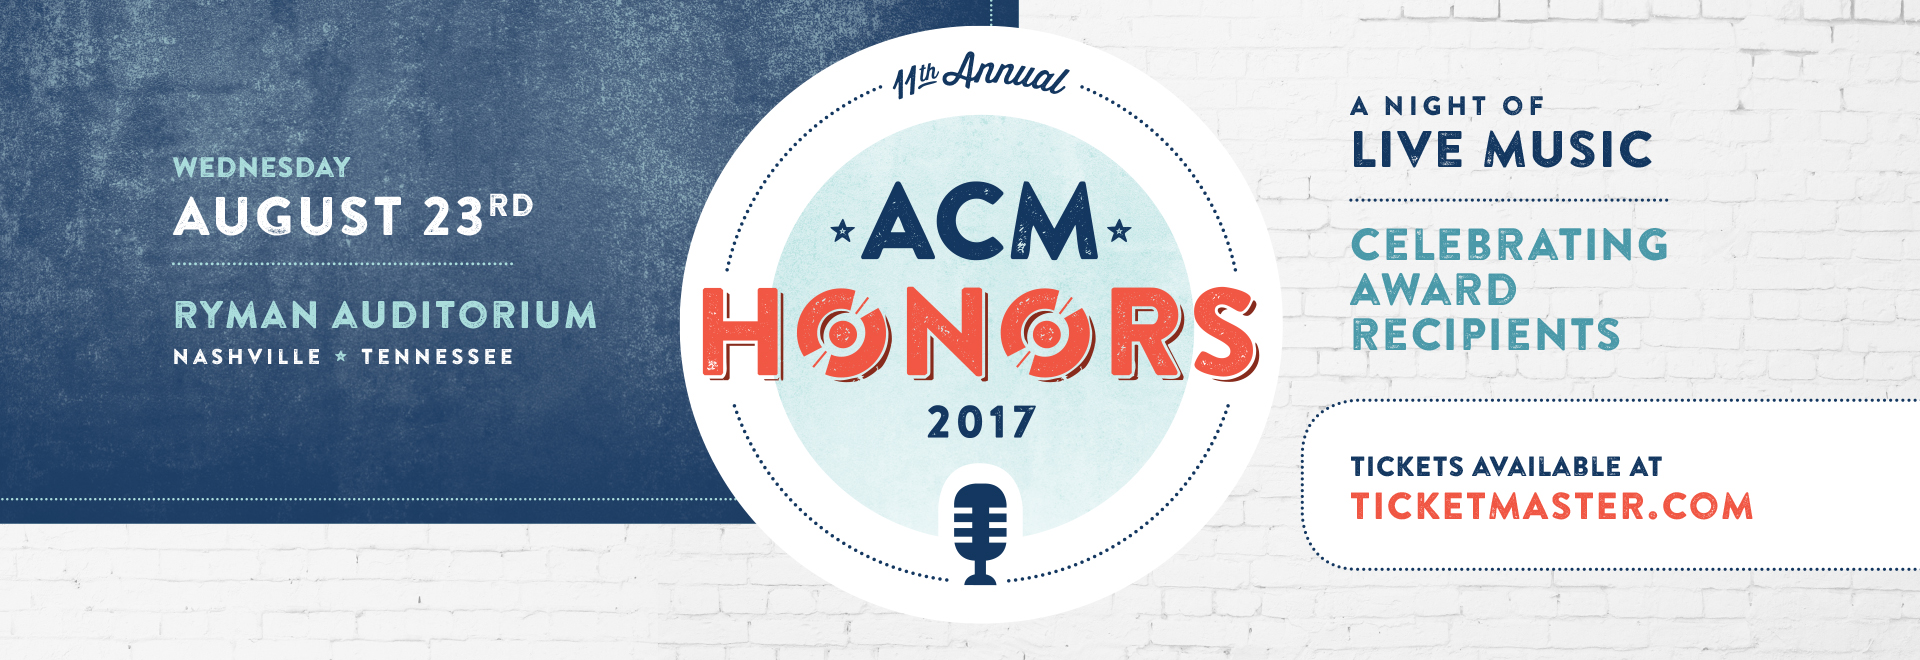 acm_Honors2017_rotator_SHOW_1920x660_080917.jpg